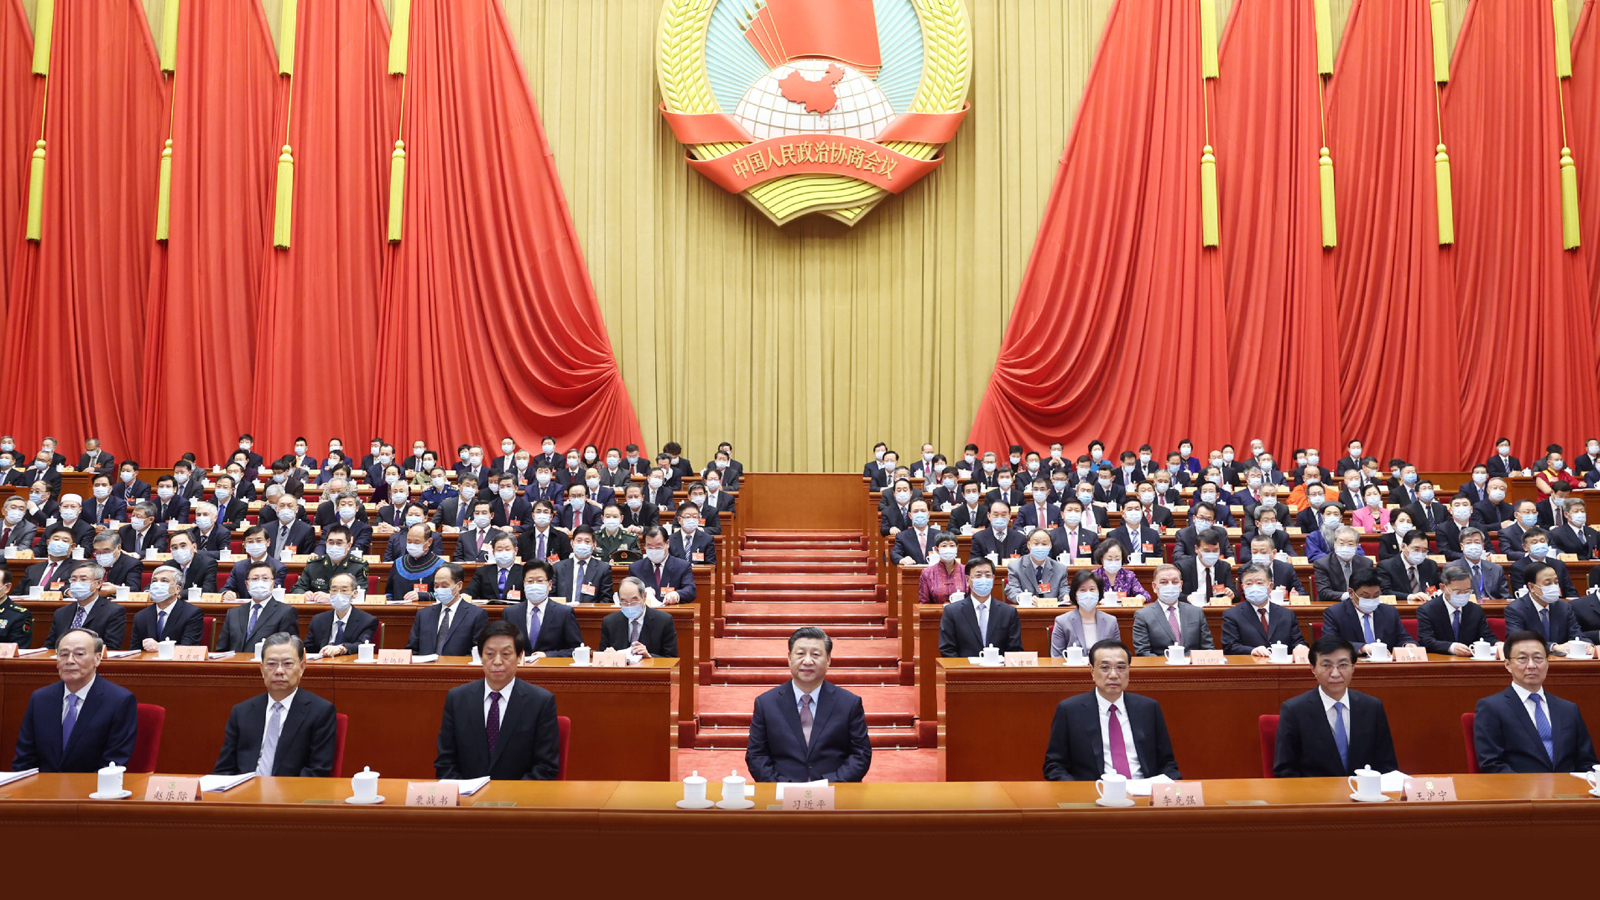 President Xi Jinping and other leaders attend the opening meeting of the fourth session of the 13th National Committee of the Chinese People's Political Consultative Conference in Beijing, March 4, 2021 Photo/Xinhua